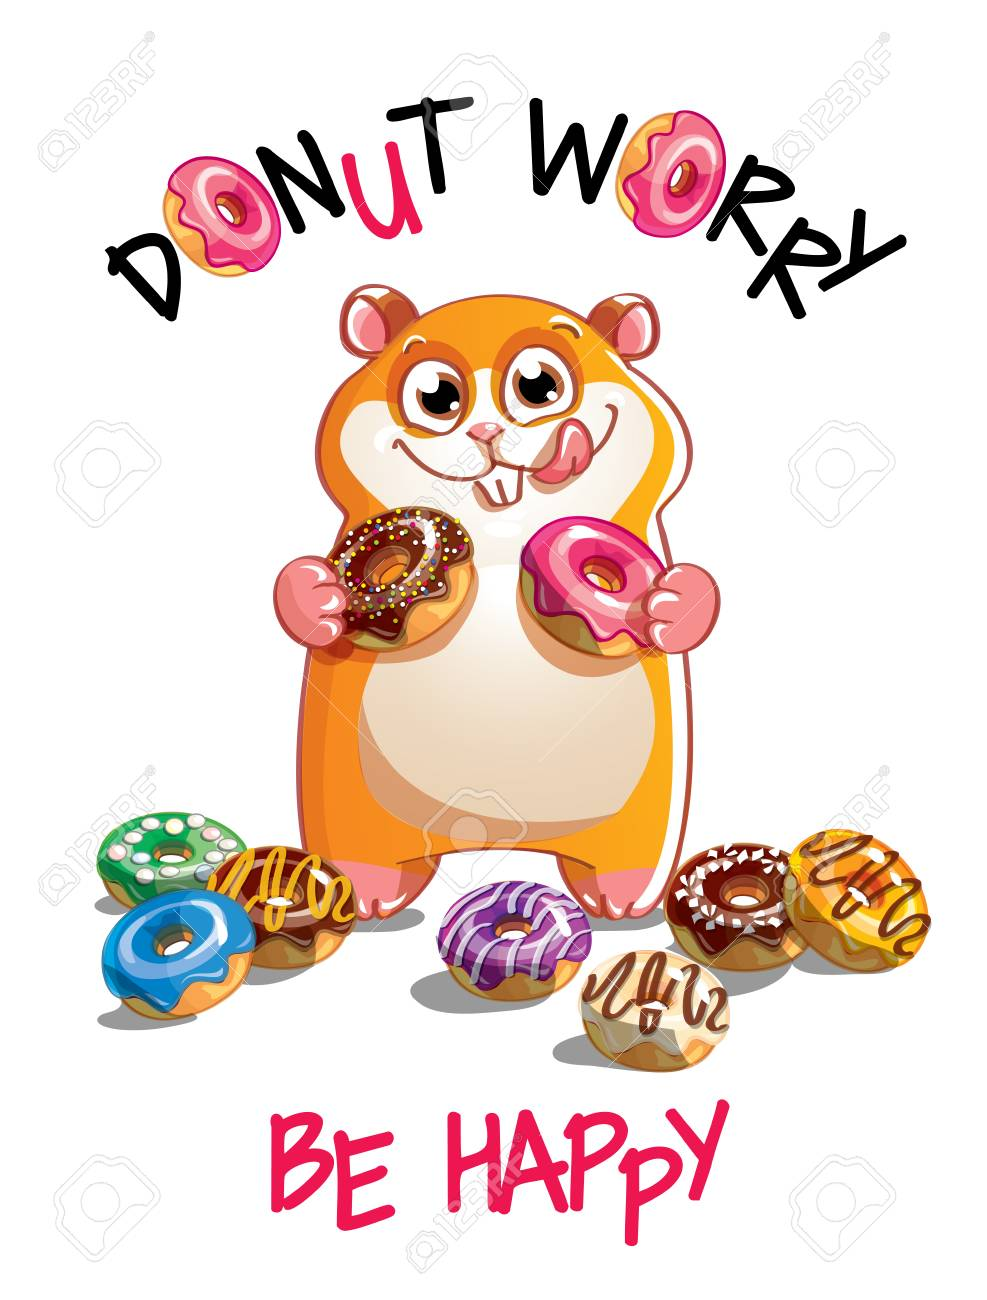 Vector illustration of cartoon hamster with donuts - 98512862